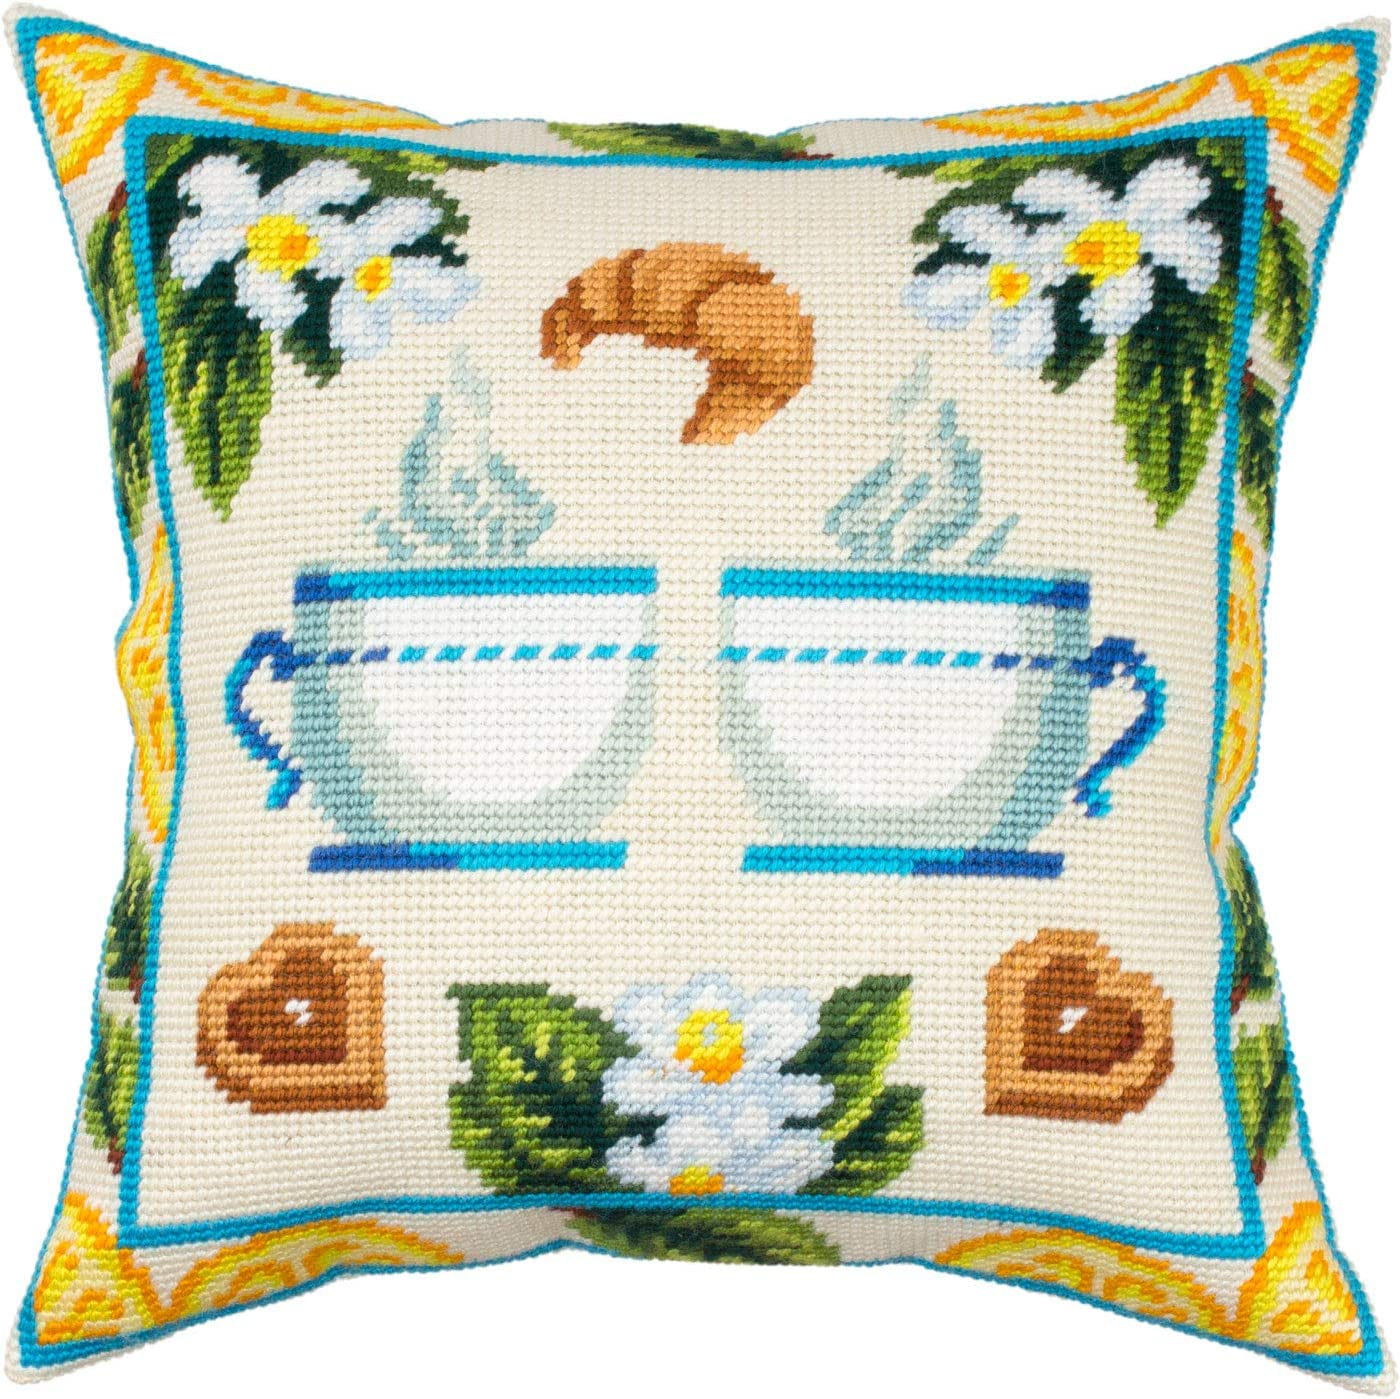 Tea with outlet Lemon. Needlepoint Kit. Pillow Inches. P 16×16 Excellent Throw